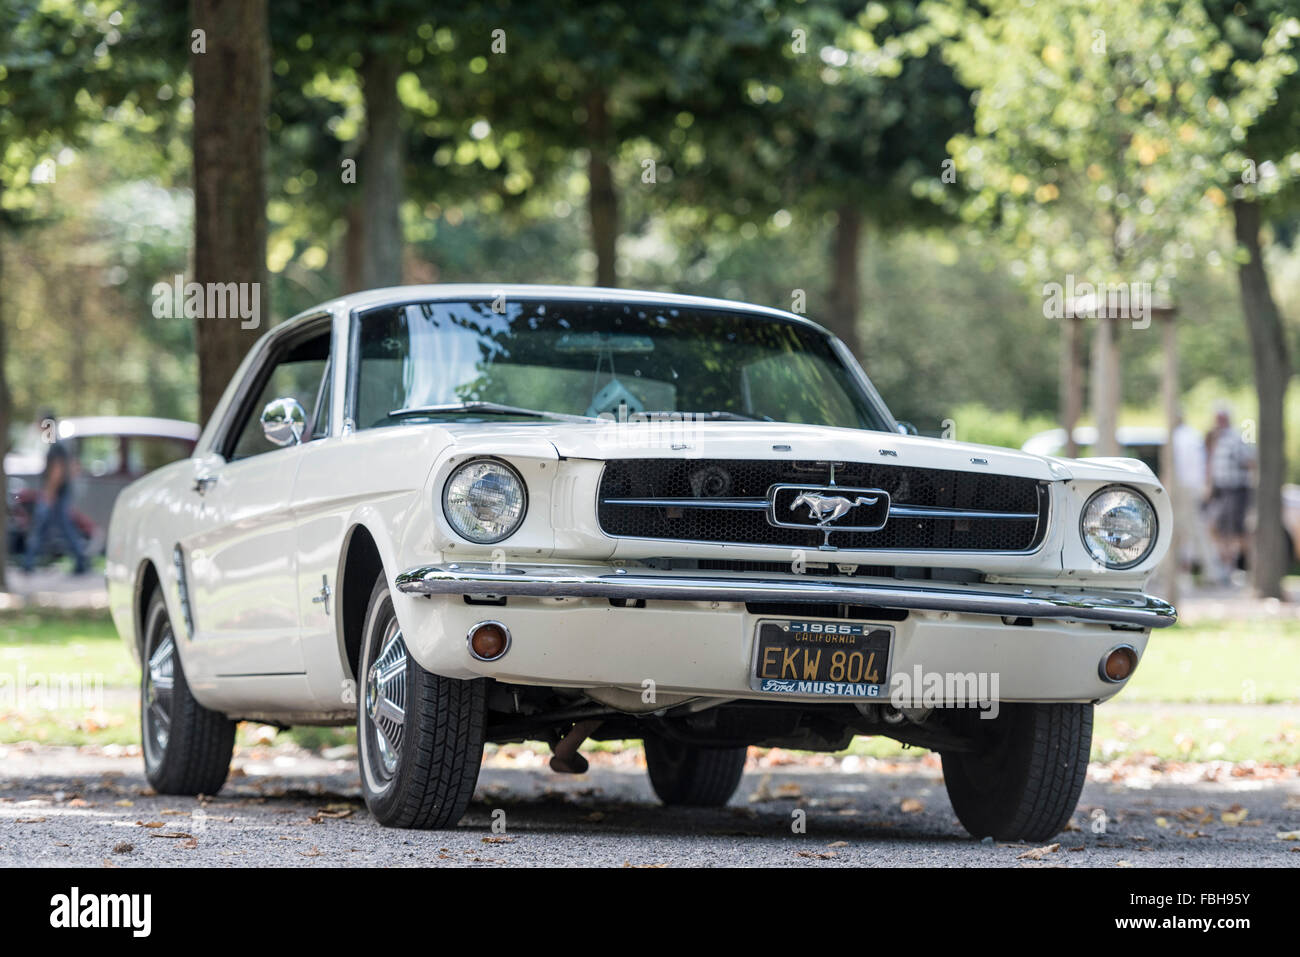 1965 ford mustang coupe stock photos 1965 ford mustang. Black Bedroom Furniture Sets. Home Design Ideas